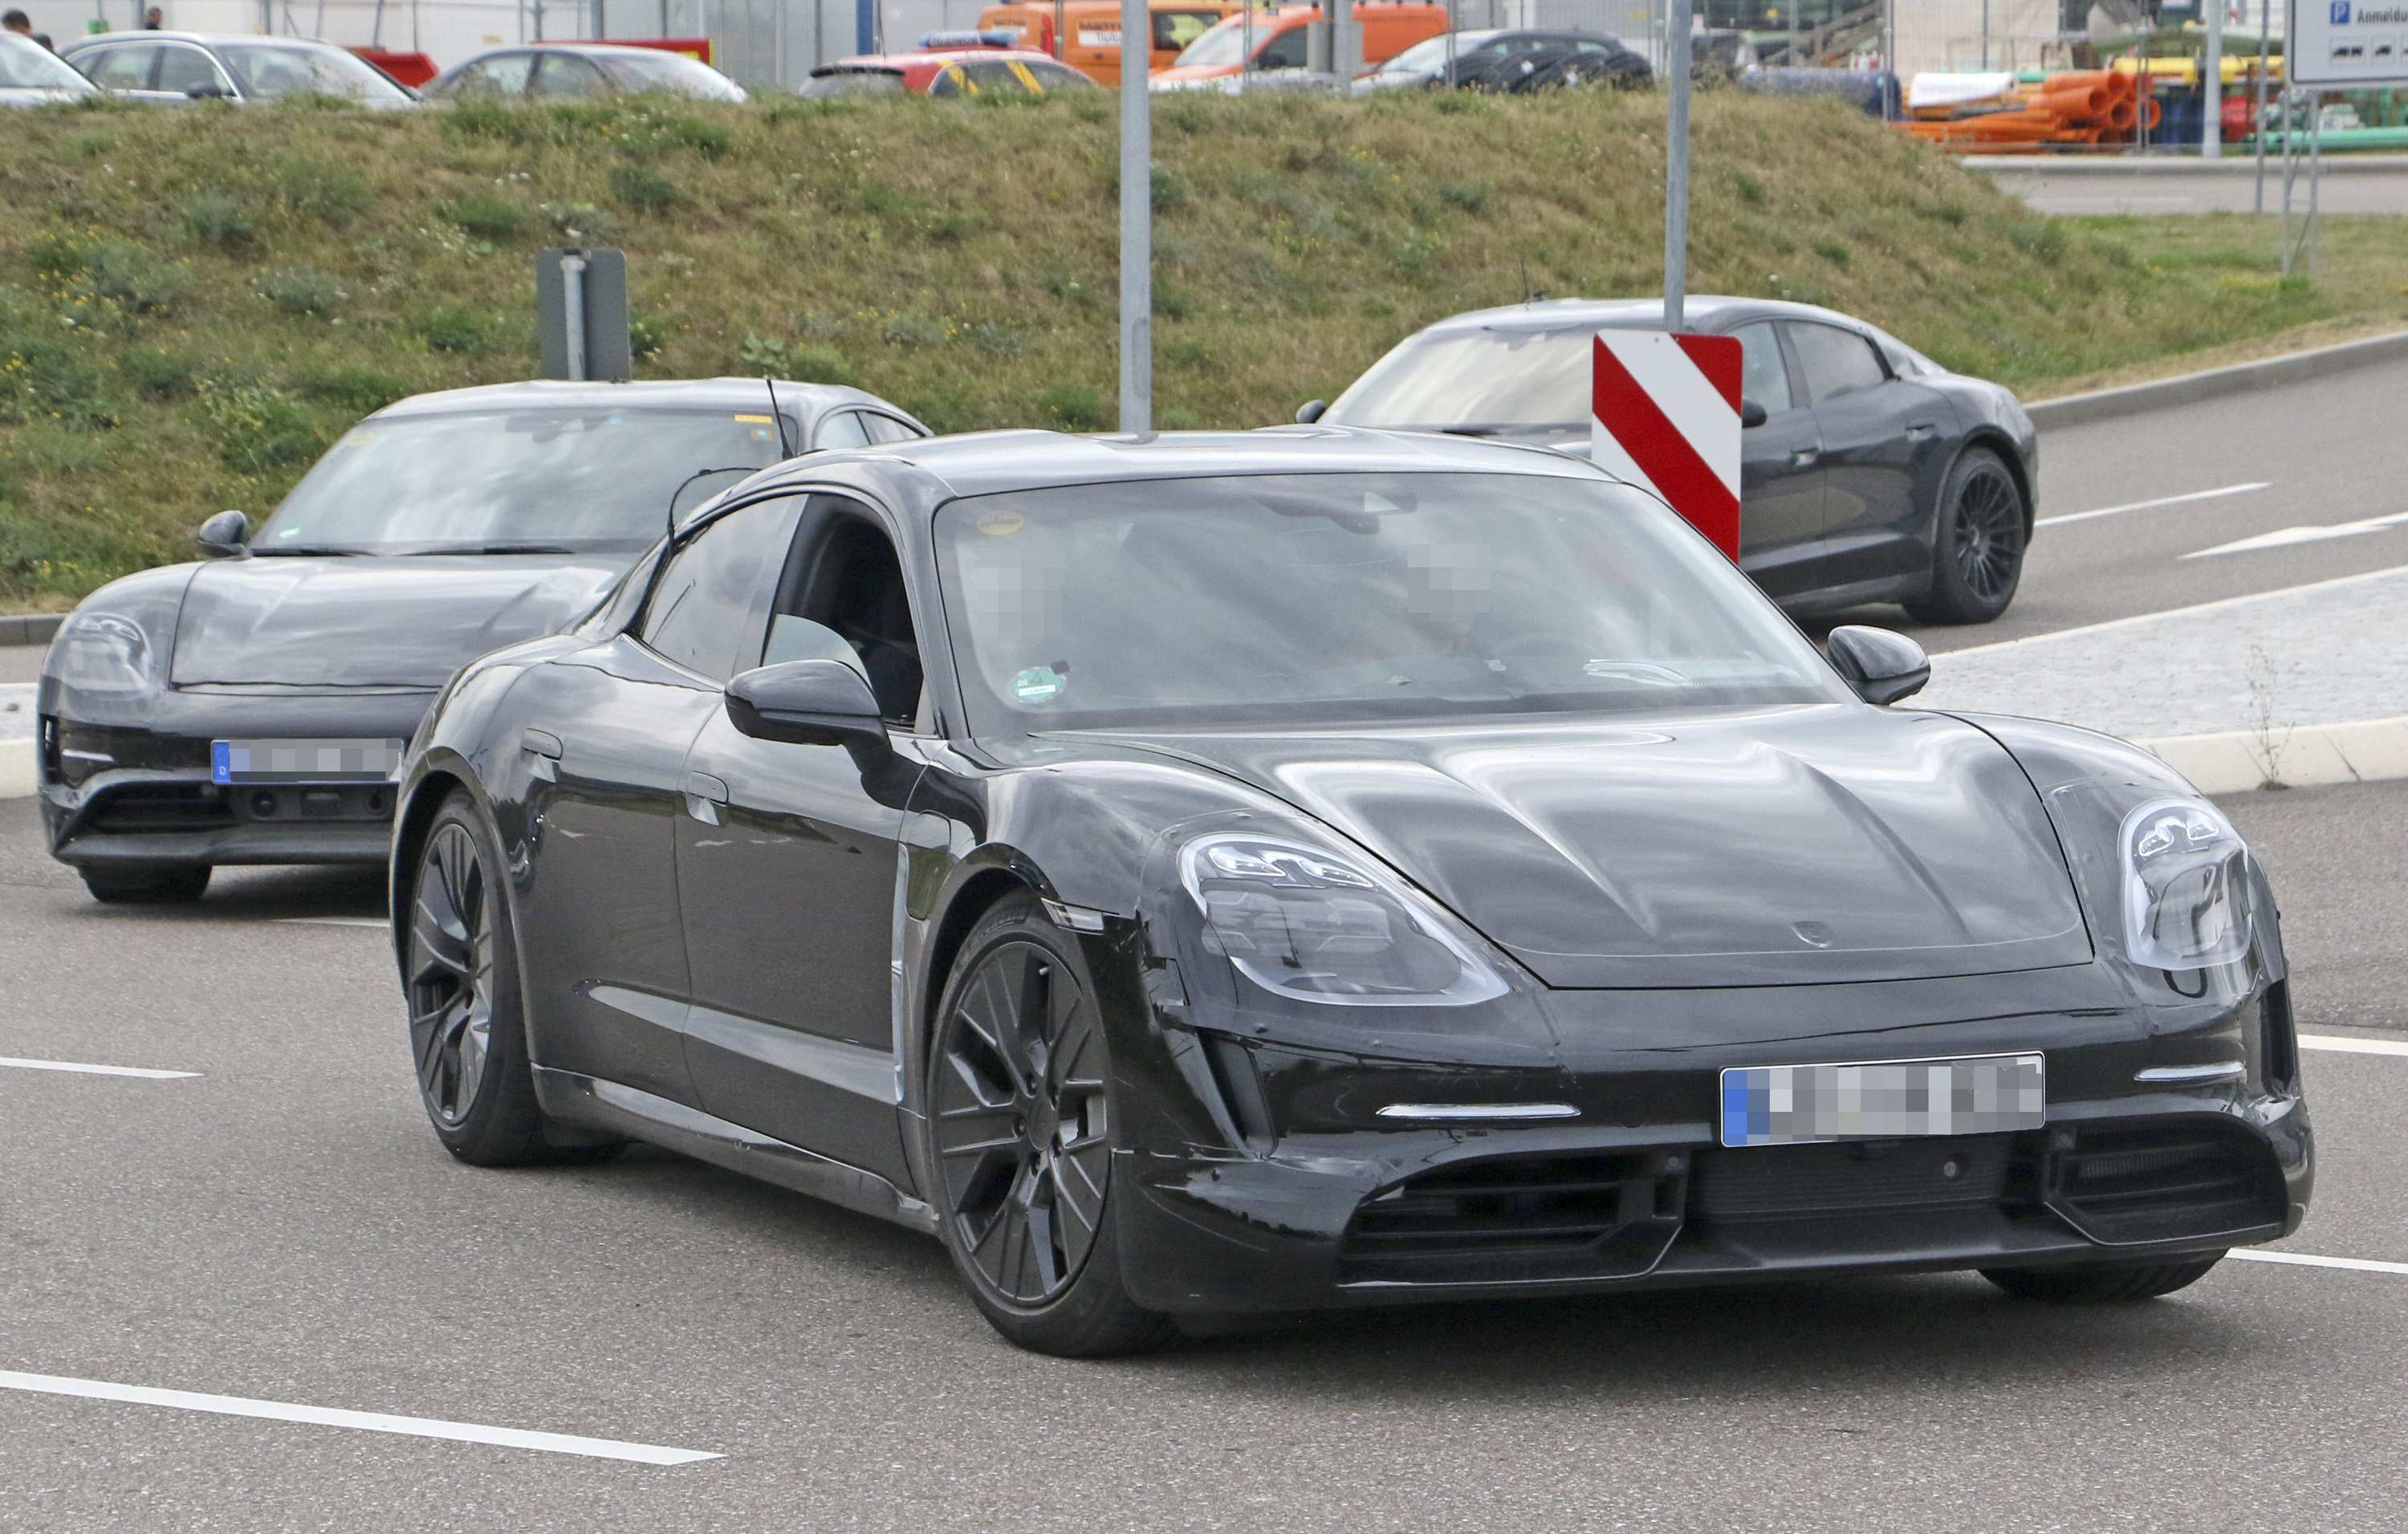 38 The 2020 Porsche Mission E Electric Sedan Spied Testing Alongside Teslas Ratings with 2020 Porsche Mission E Electric Sedan Spied Testing Alongside Teslas